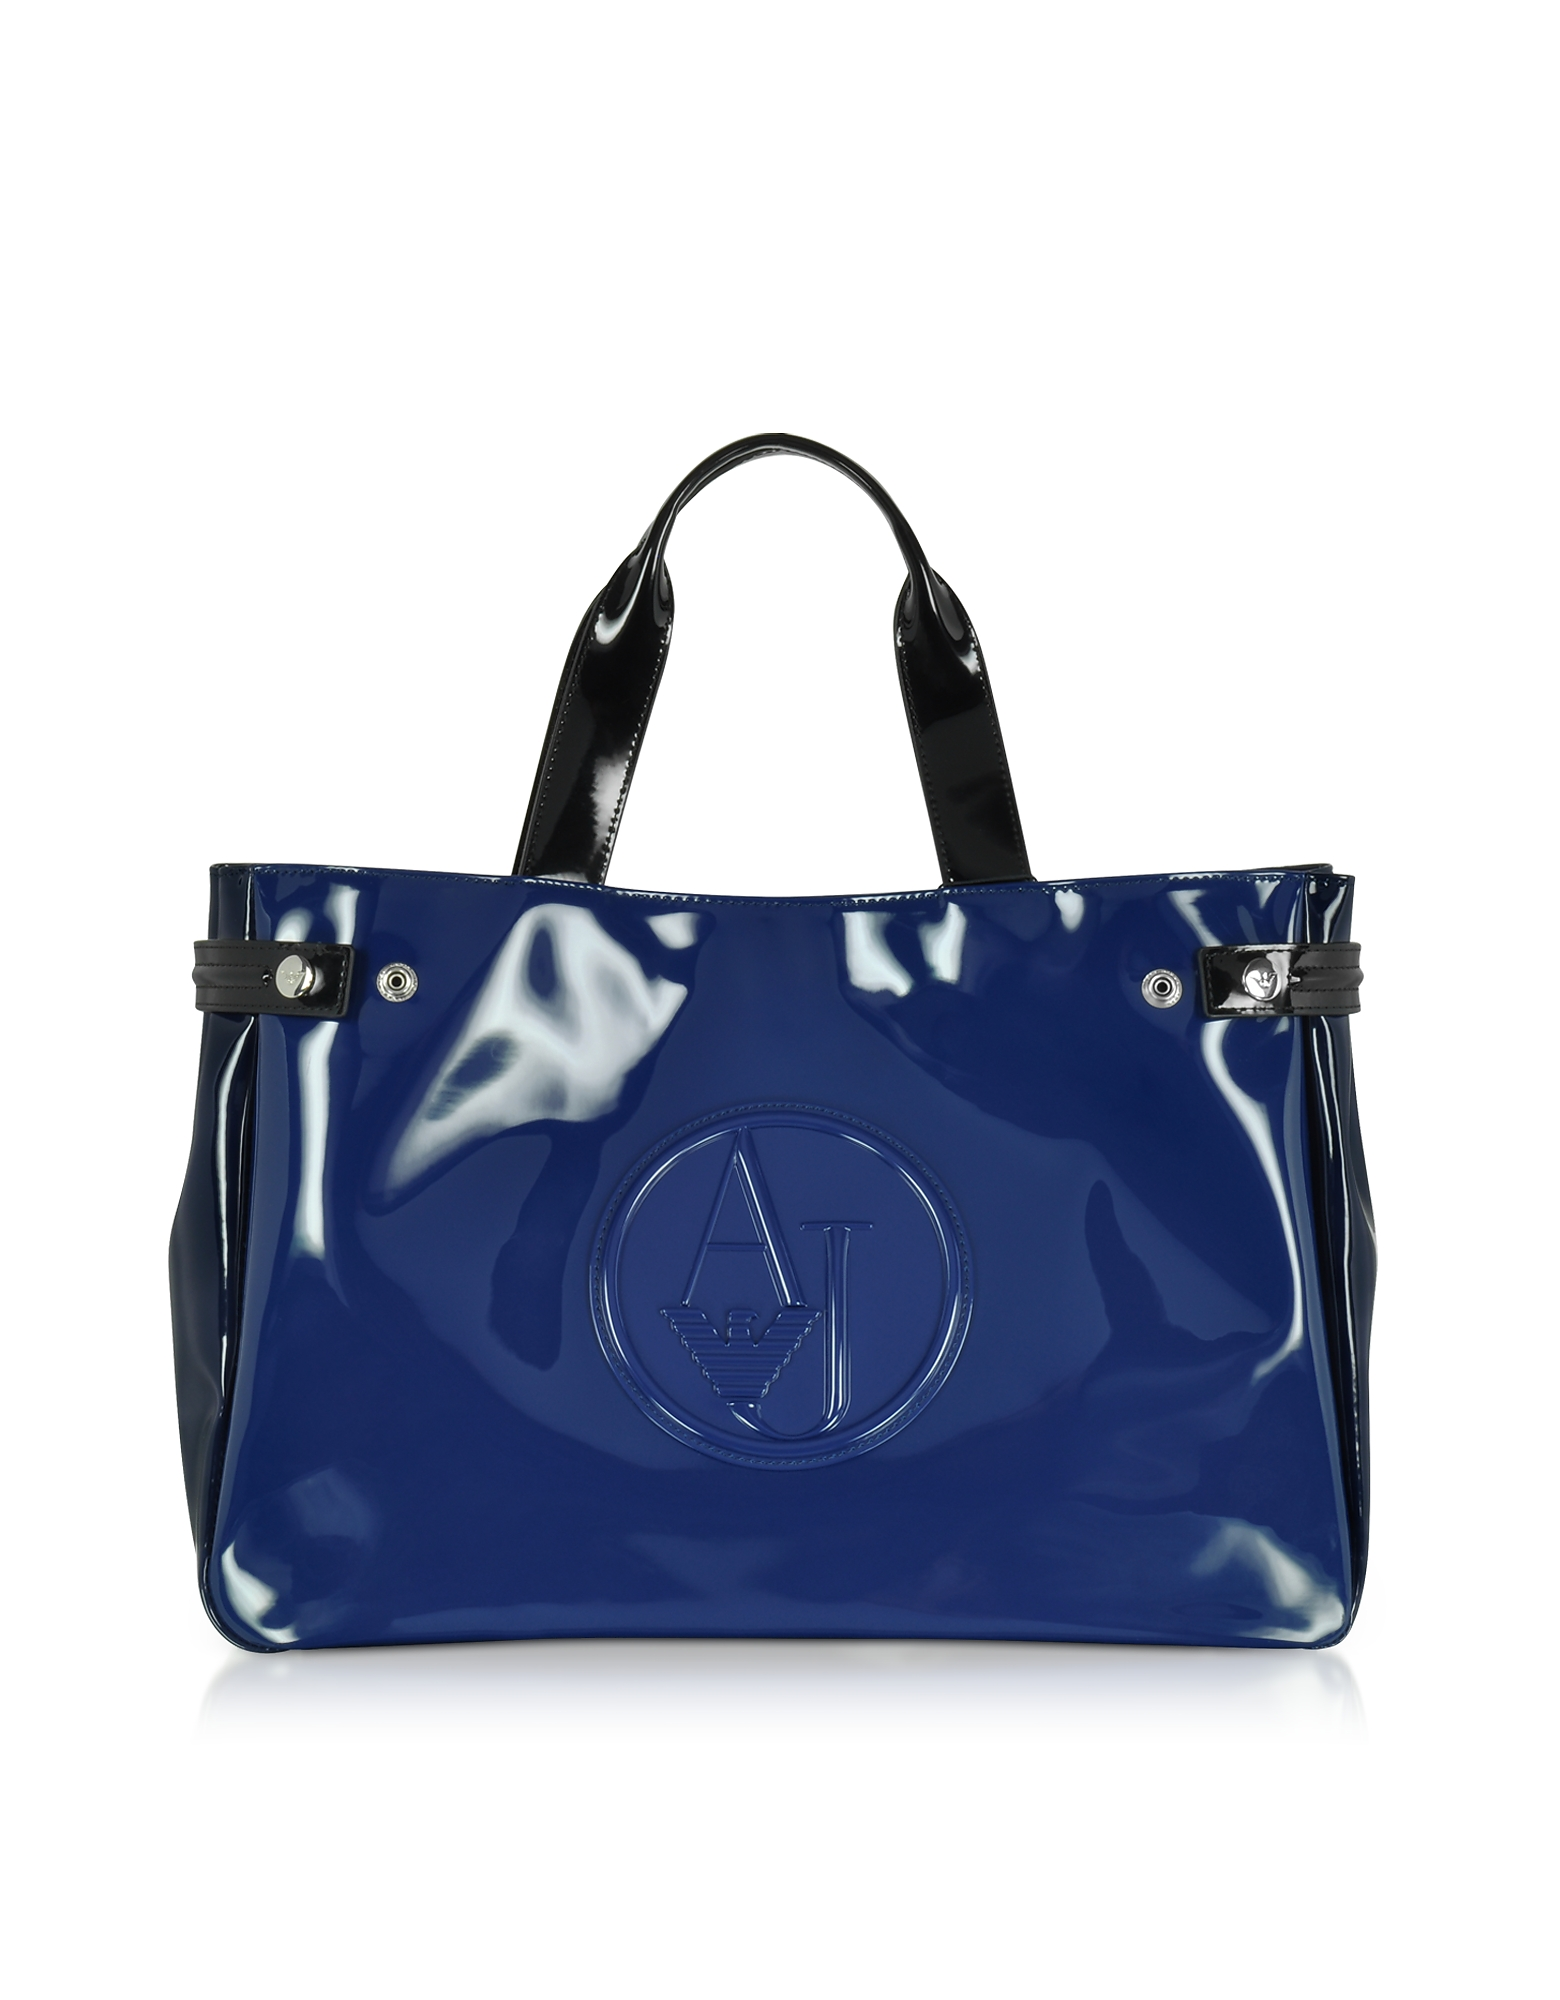 Armani Jeans Handbags, Large Blue, Dark Navy and Black Faux Patent Leather Tote Bag